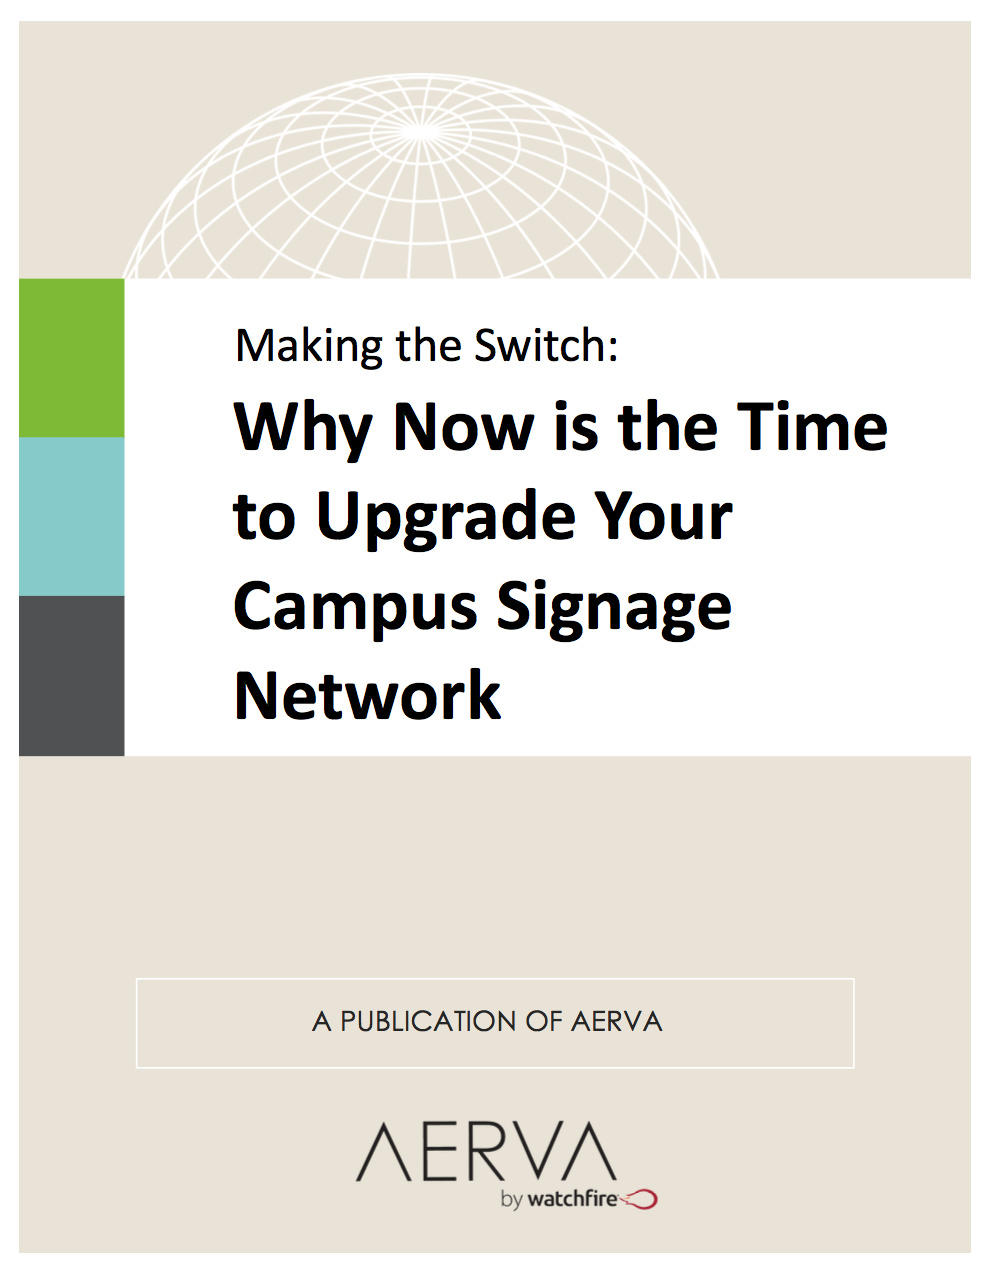 making-the-switch-digital-signage.jpg